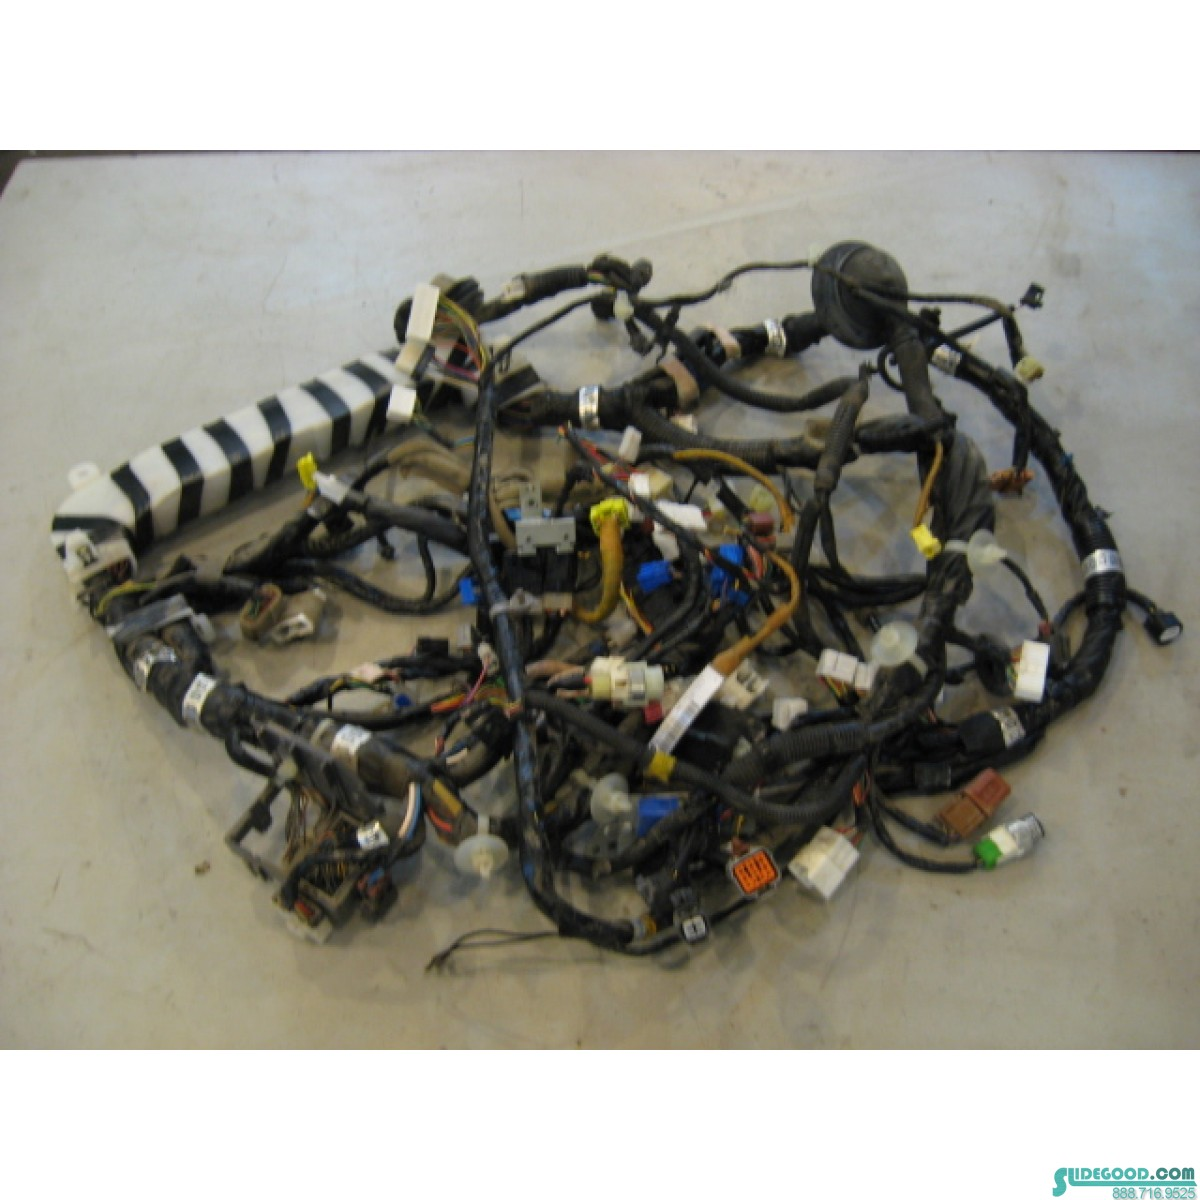 ecu wiring diagram subaru images subaru forester radio wiring diagram further subaru headlight wiring